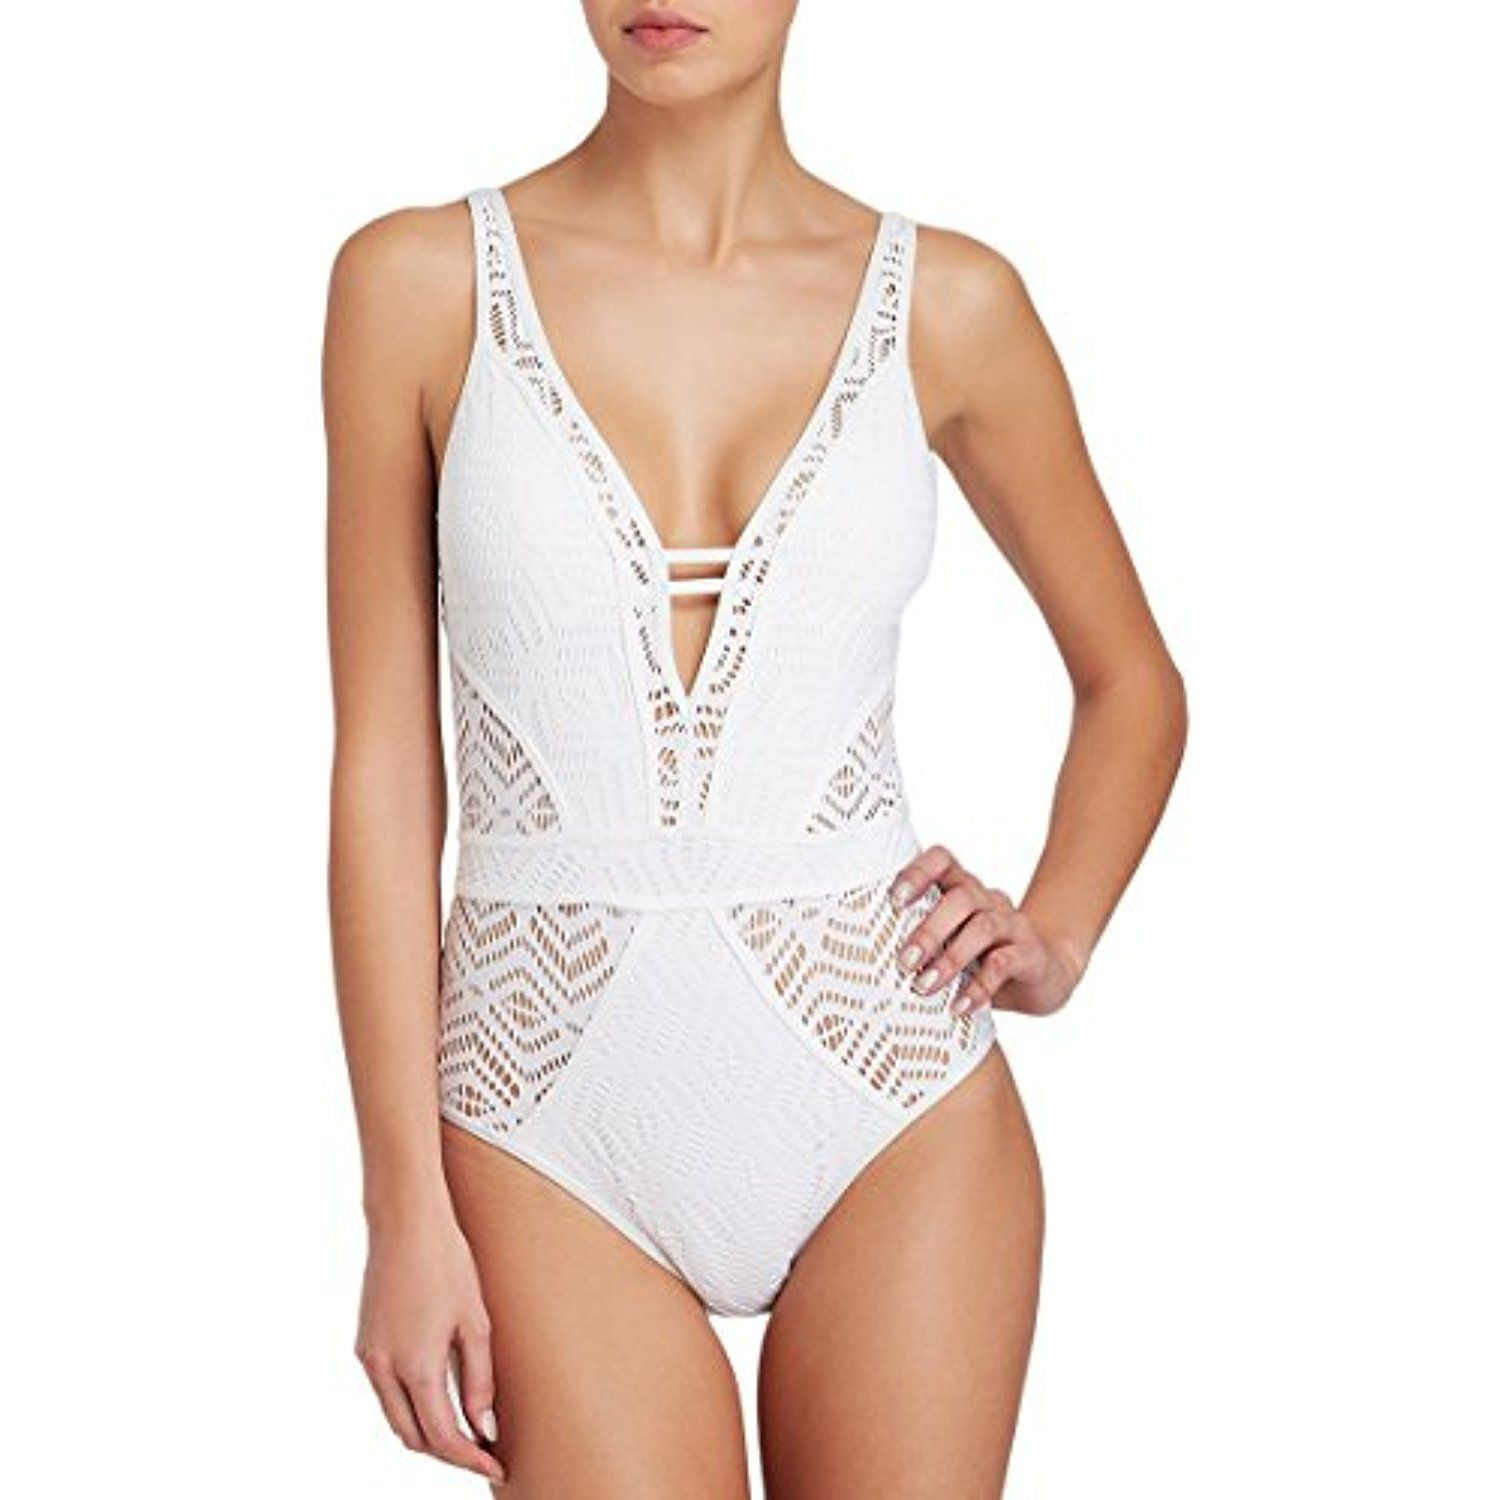 6369c618c7 Sovoyant Women s V Neck Mesh Lace Hollow Out One Piece Swimsuit Swimwear  Petite Size     Check out this great product. (This is an affiliate link)   Swimwear